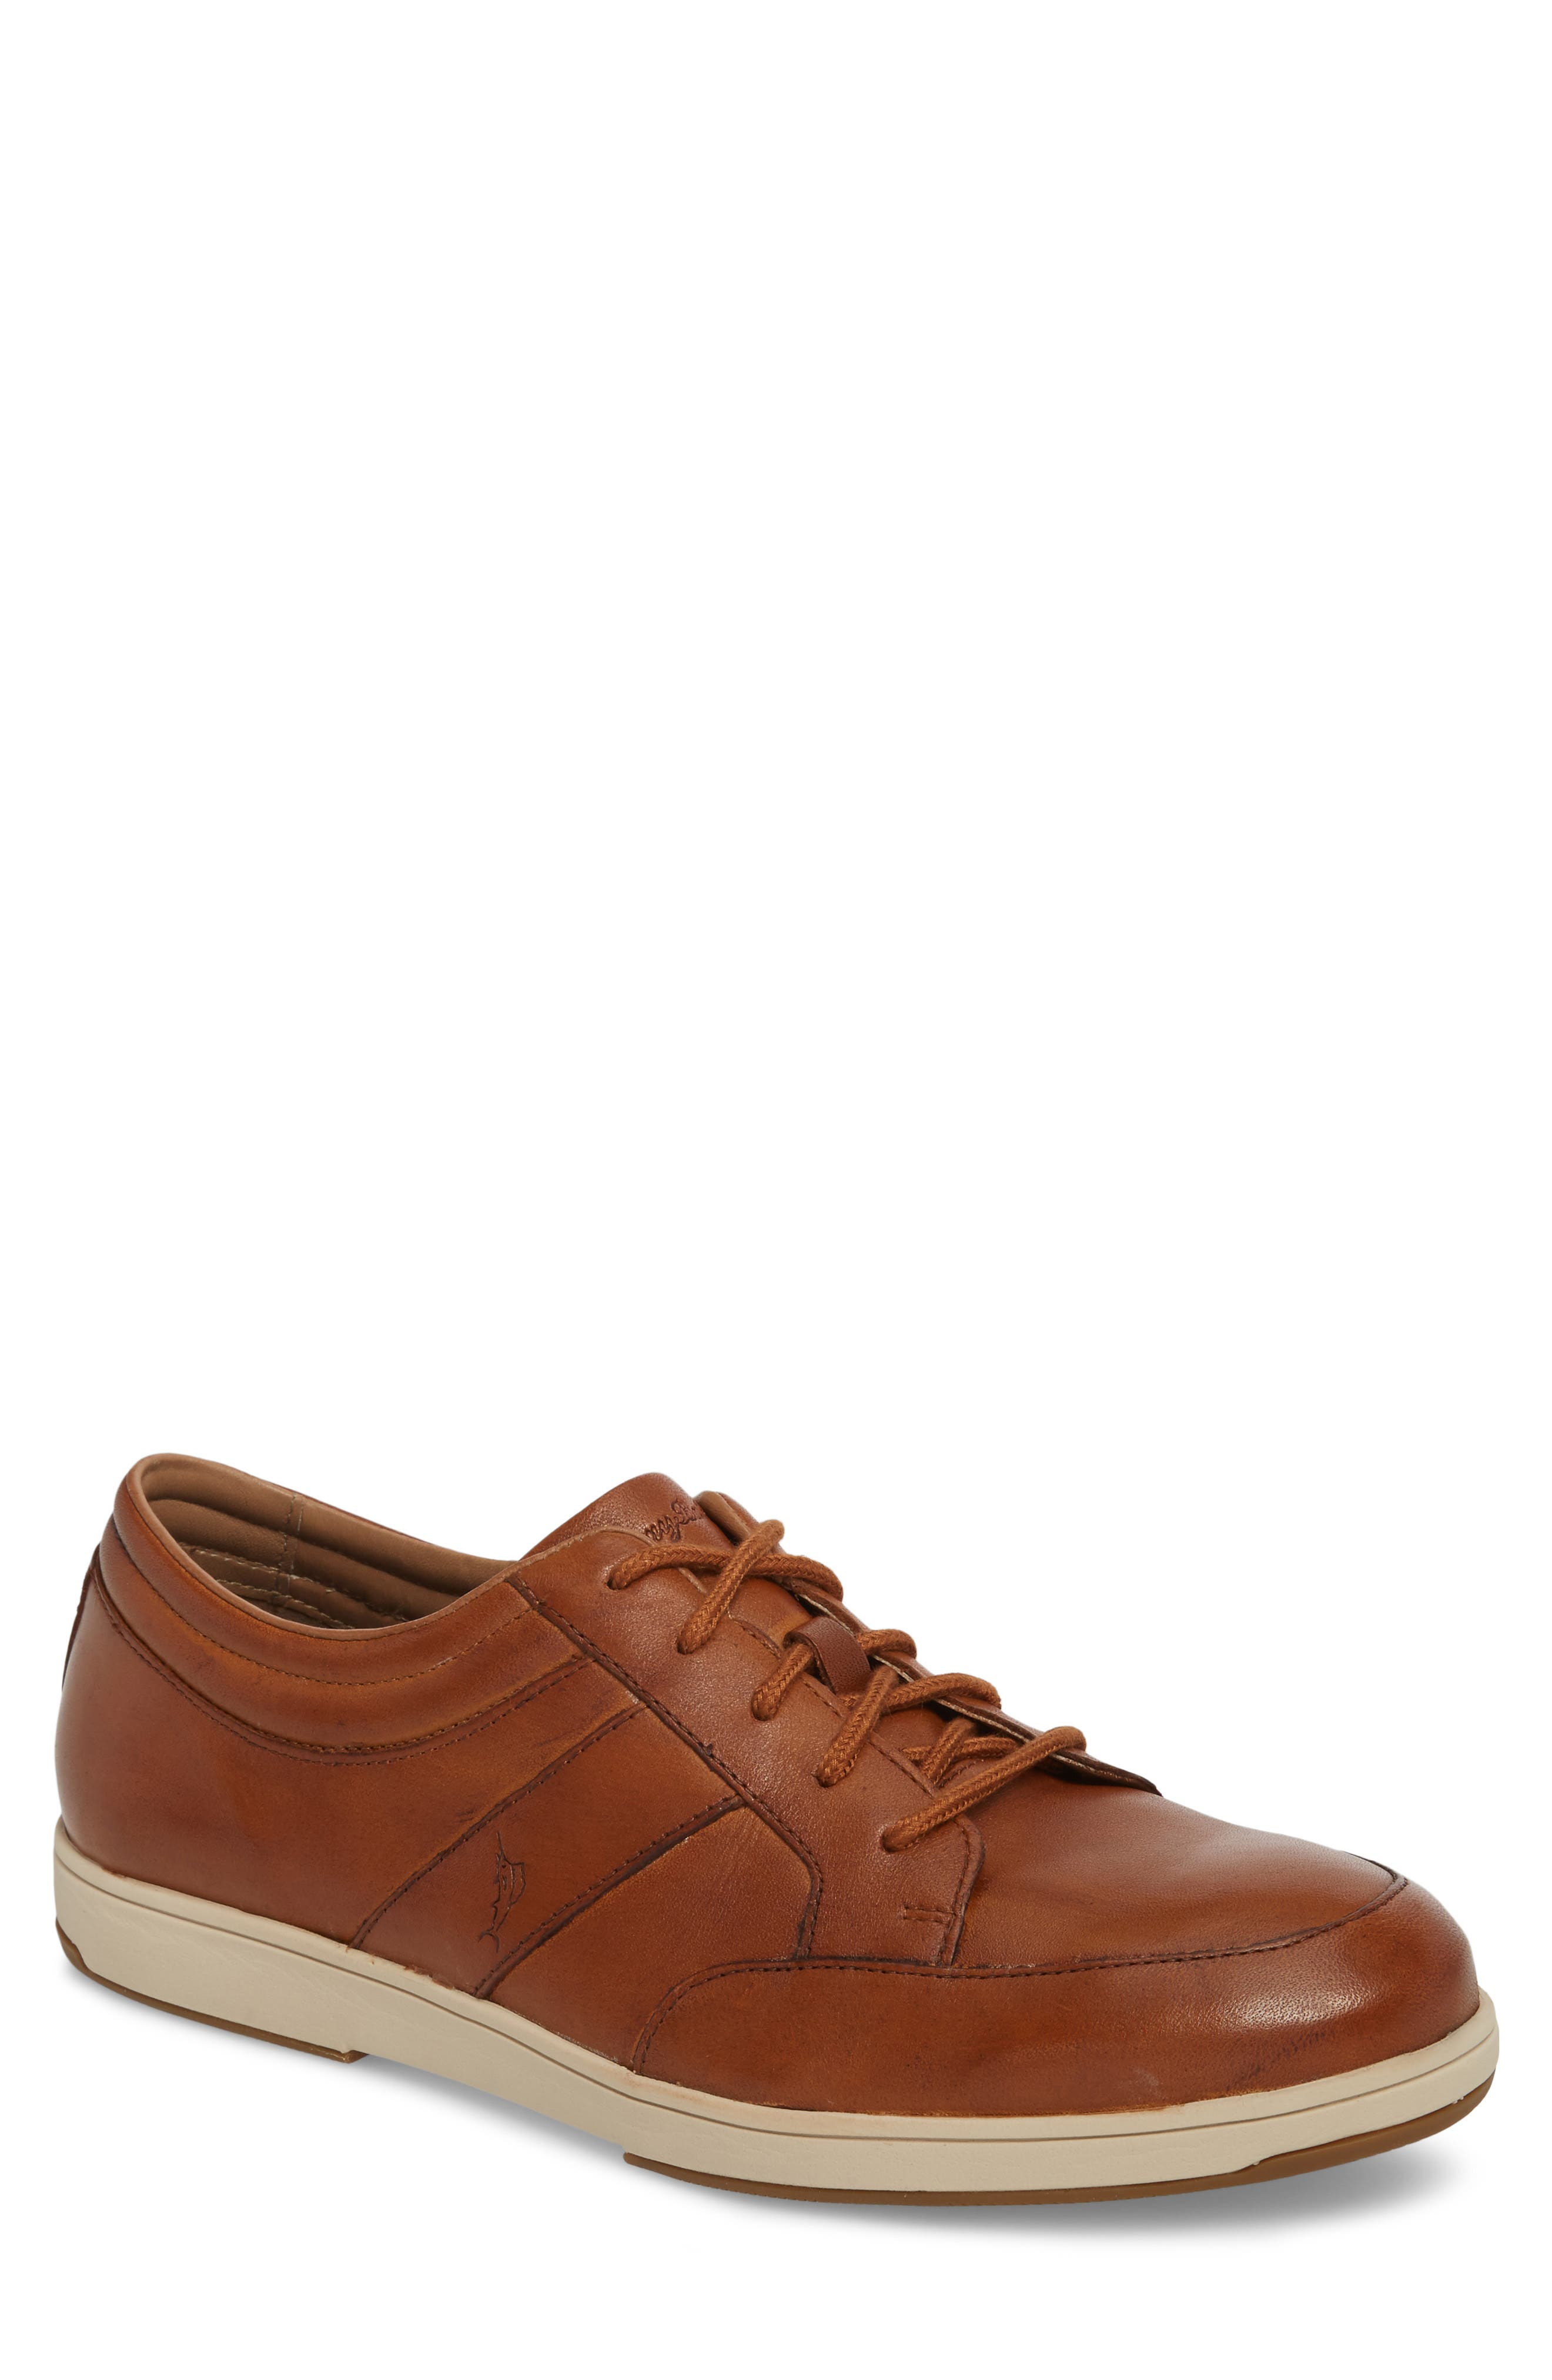 Caicos Authentic Low Top Sneaker,                         Main,                         color, TAN LEATHER